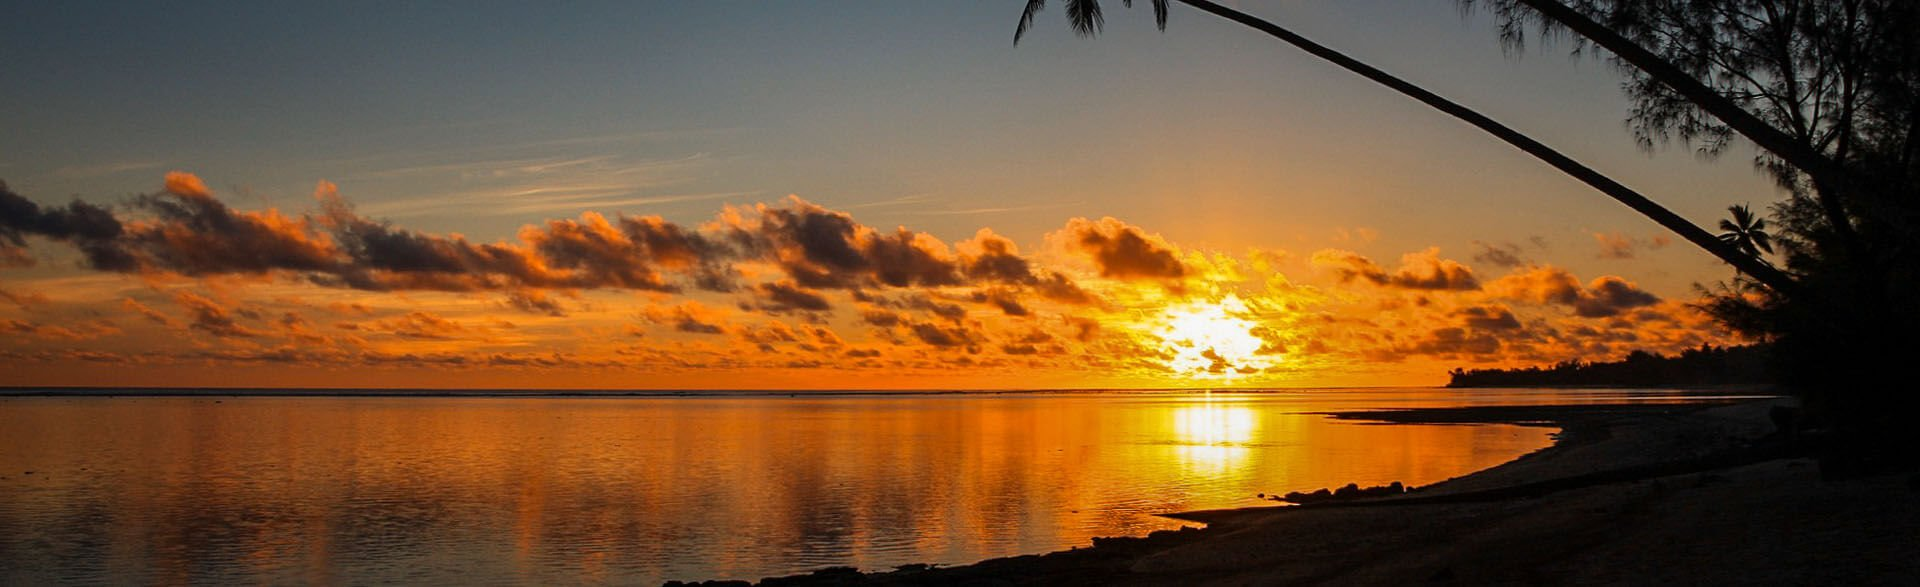 Sunset on the western side of Rarotonga.